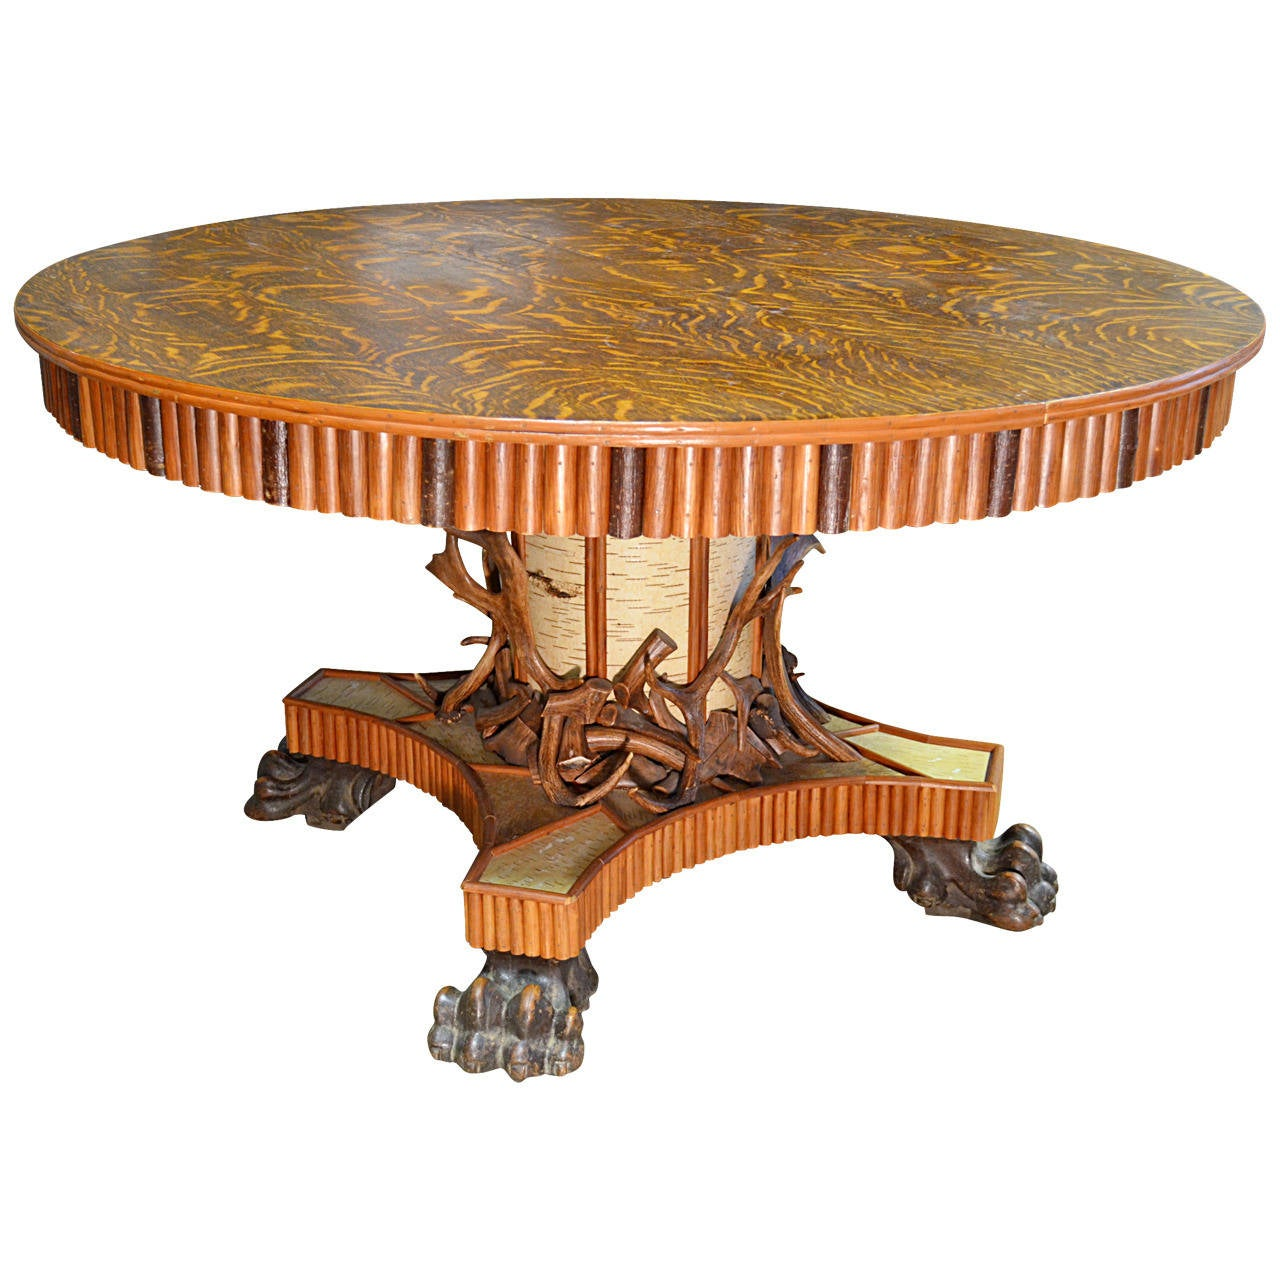 Great adirondack center table for sale at 1stdibs for Furniture centre table